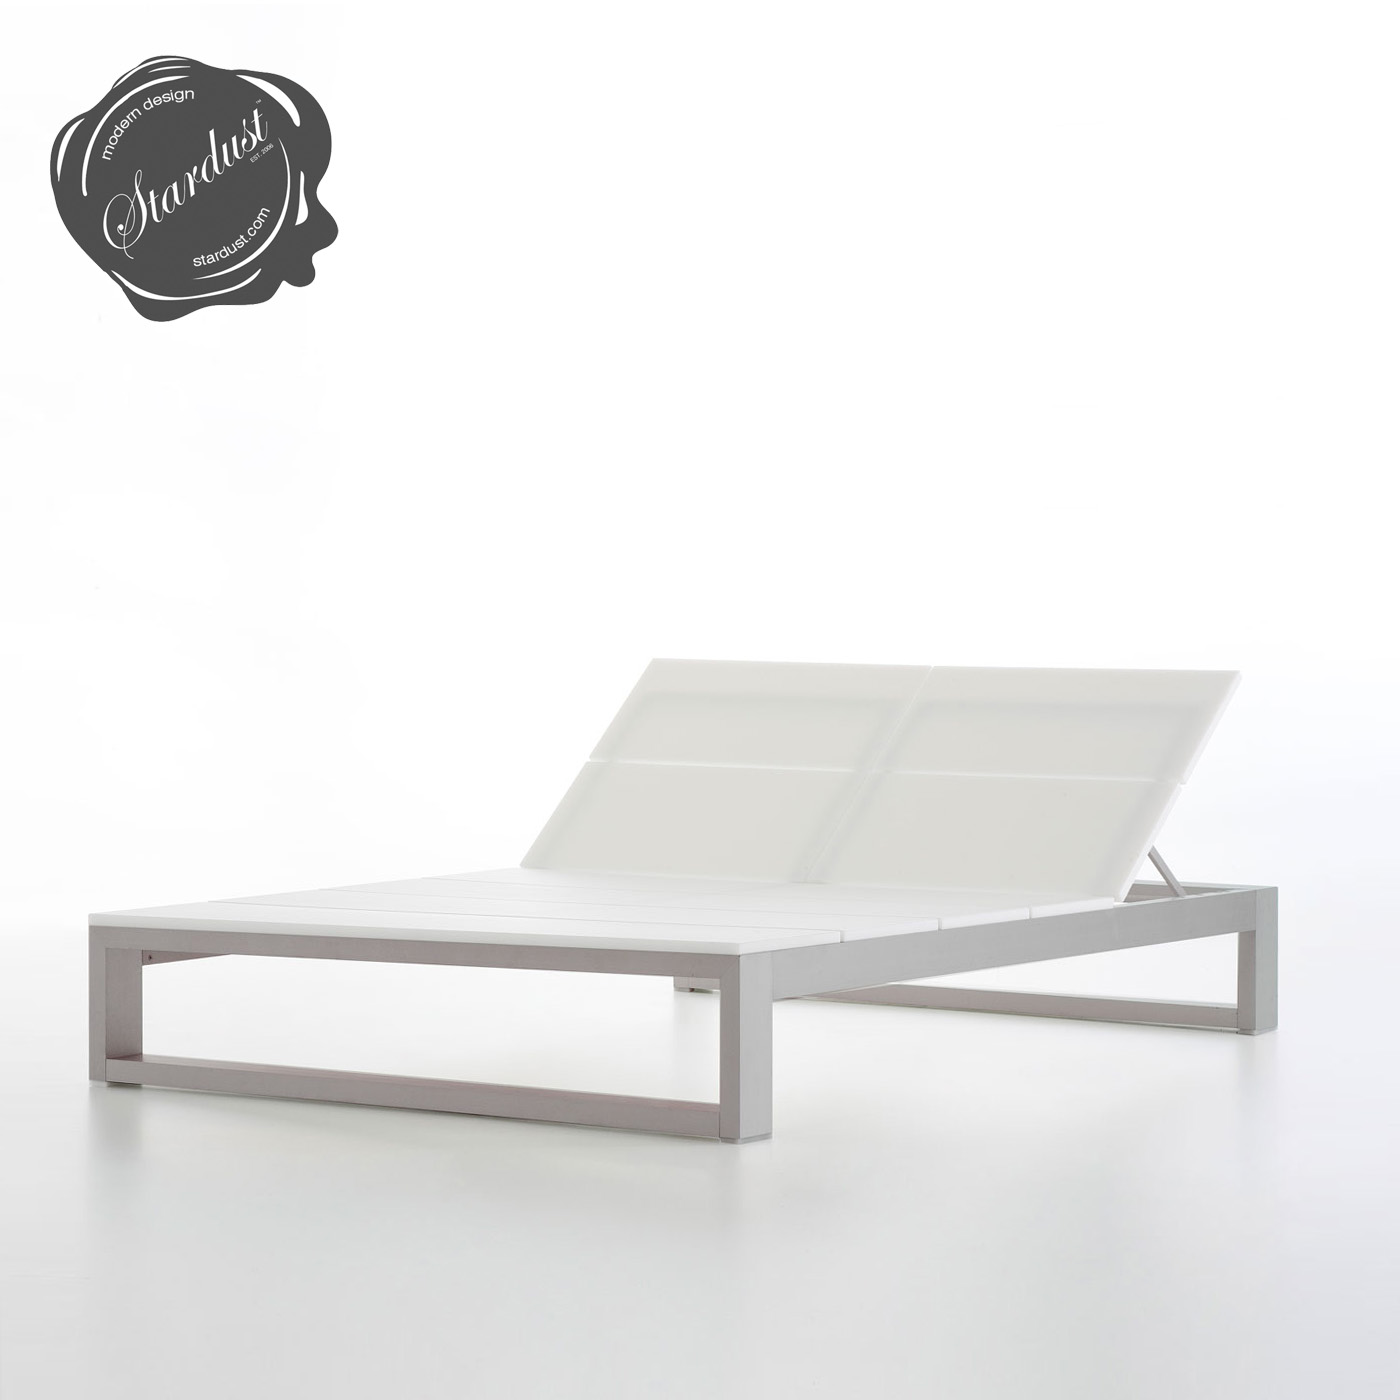 Modern patio chaise lounge - Double Outdoor Chaise Lounge Gandia Blasco Tumbona Na Xemena Es Cavallet Modern Outdoor Lounge Chaise